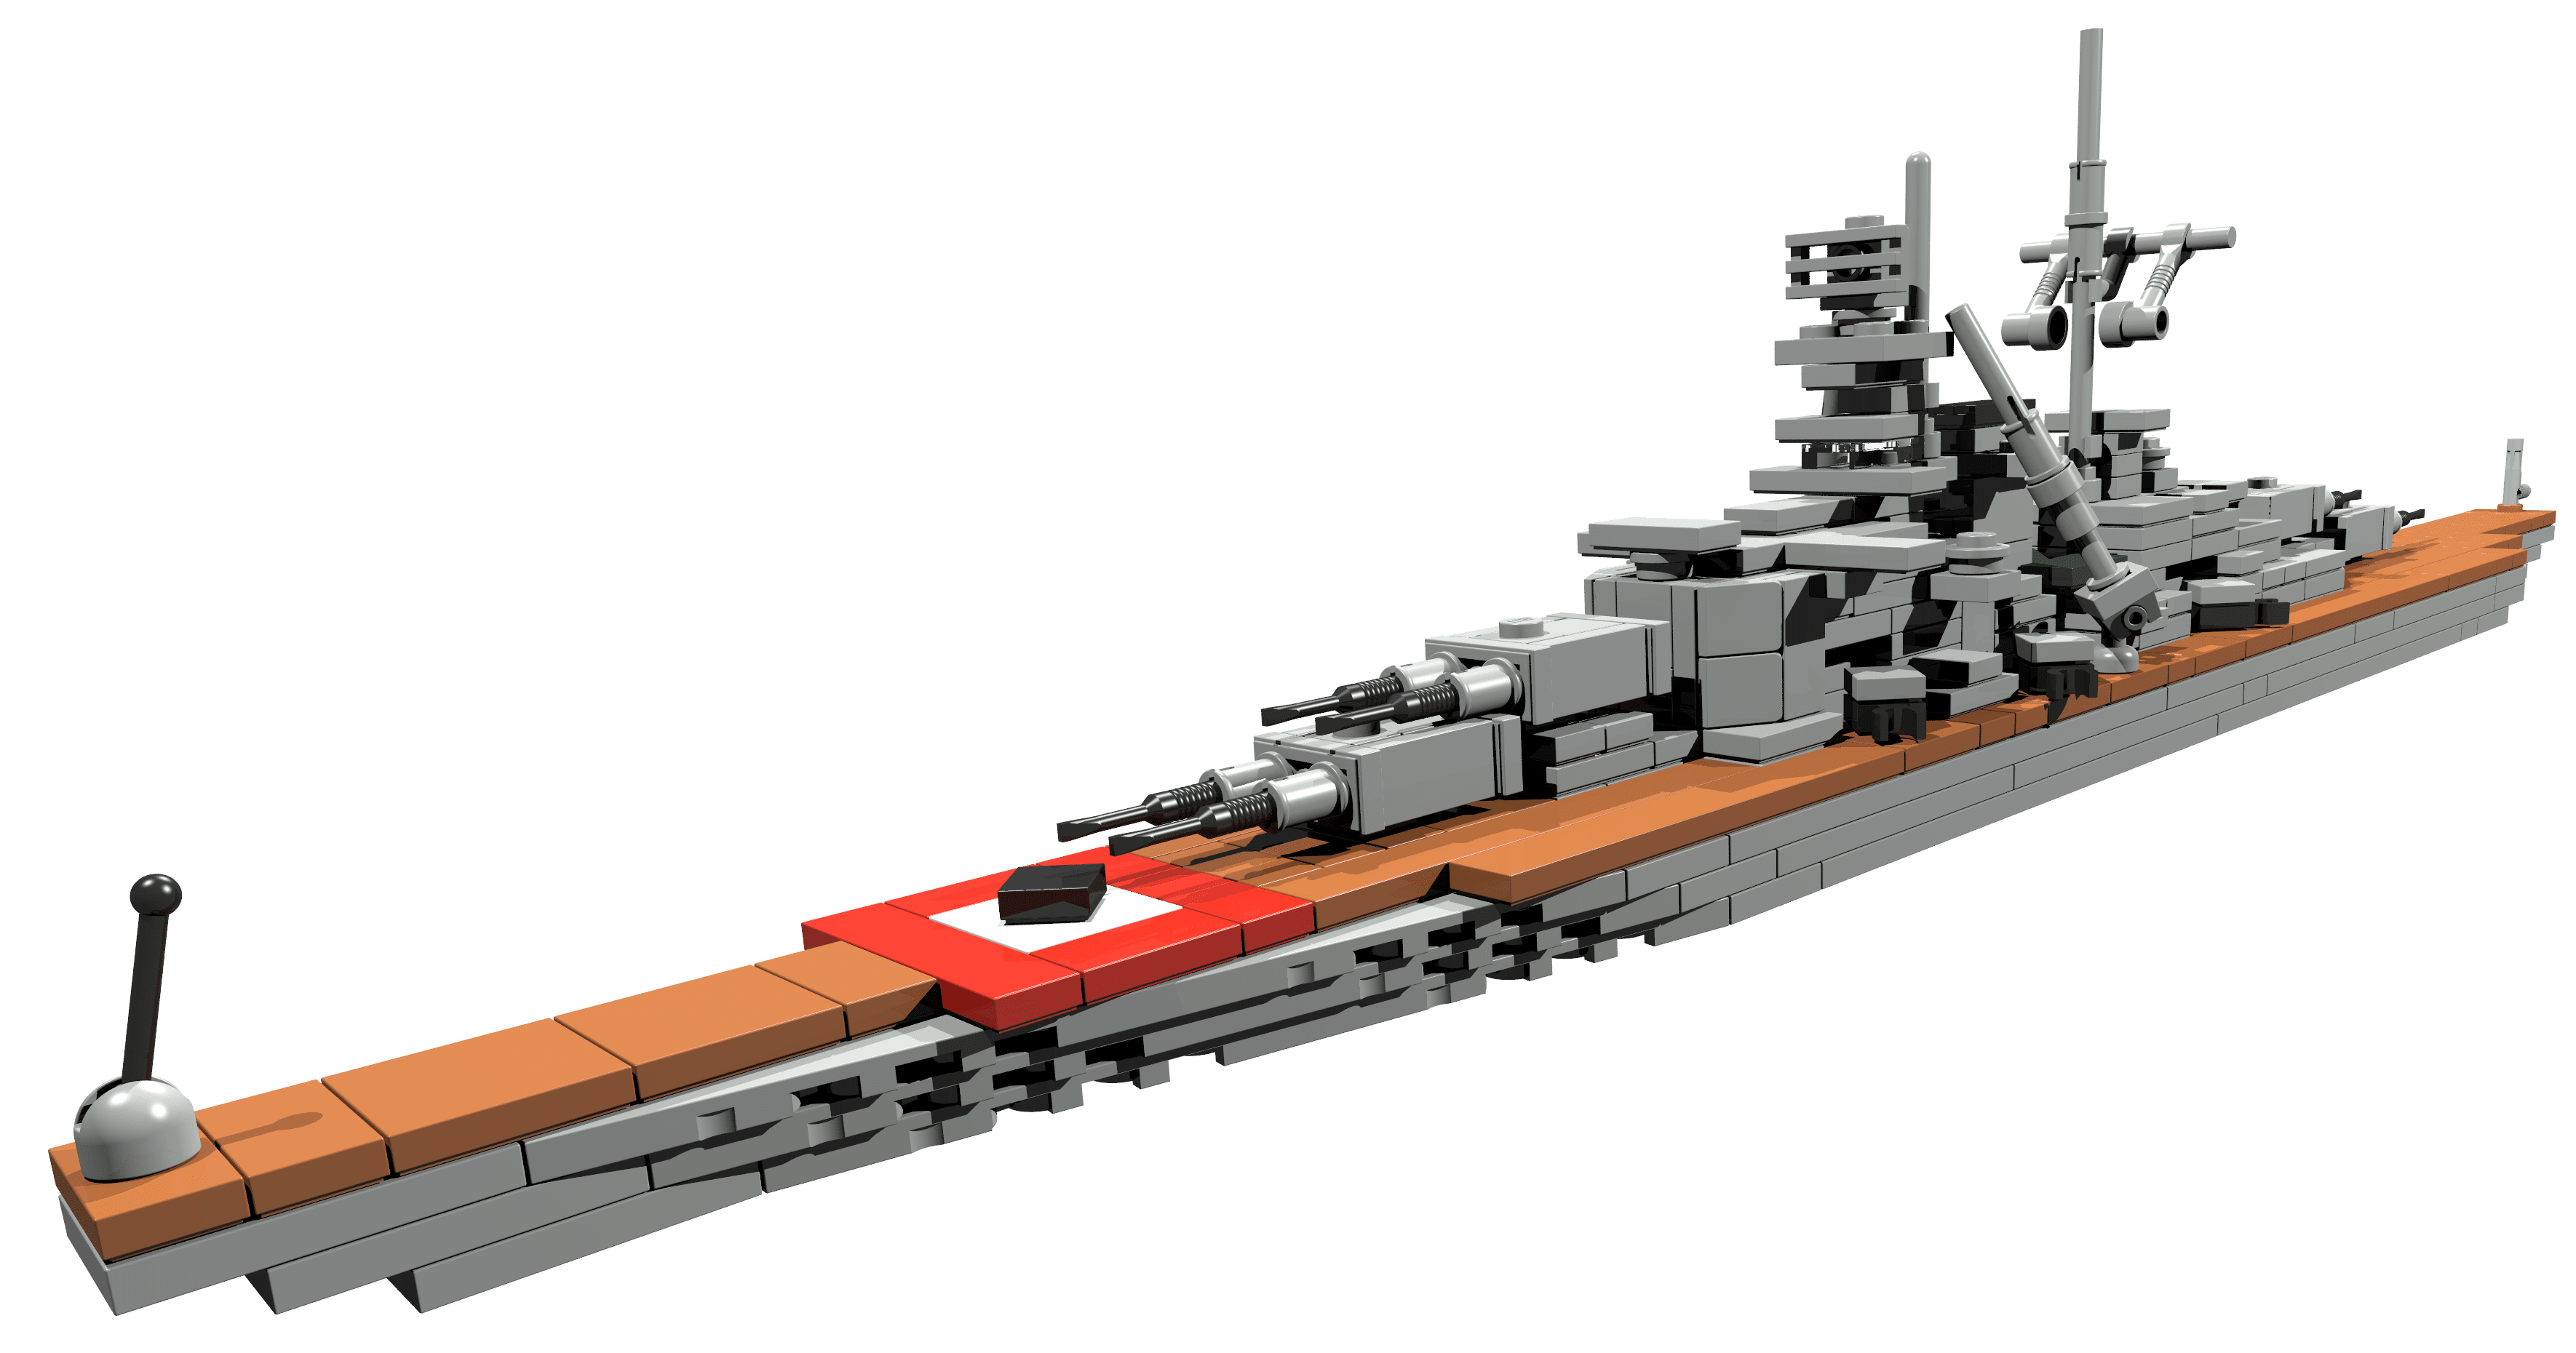 Bismarck Miniscale Battleship To Be Build Out Of Lego Bricks Lego Instructions Mocsmarket